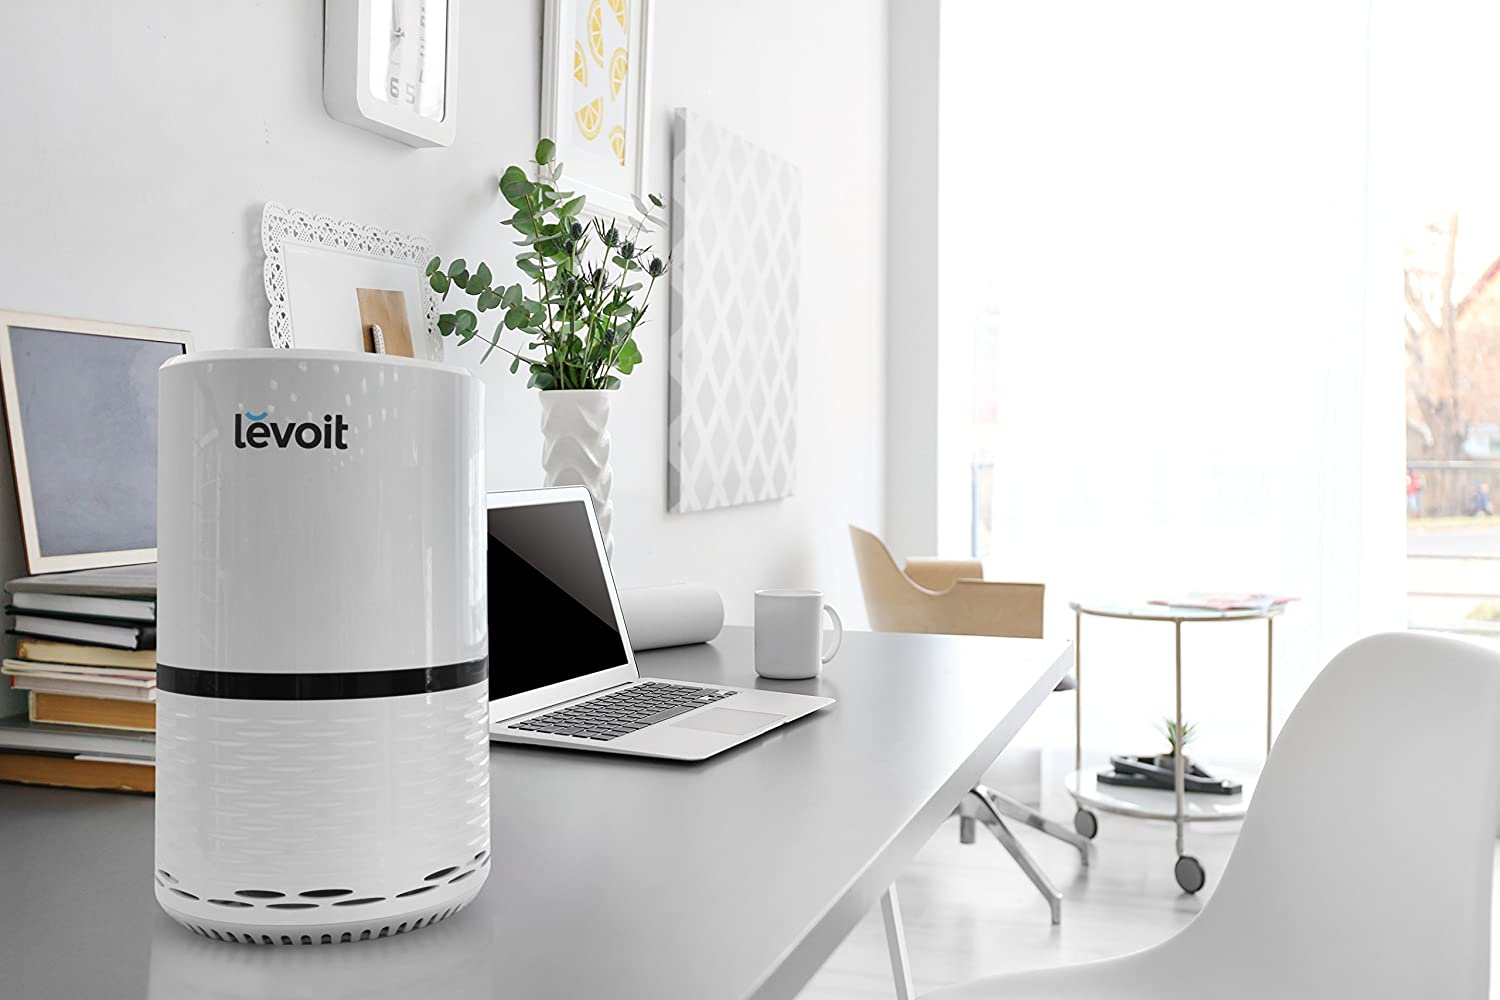 levoit lv h132 air purifier cheap